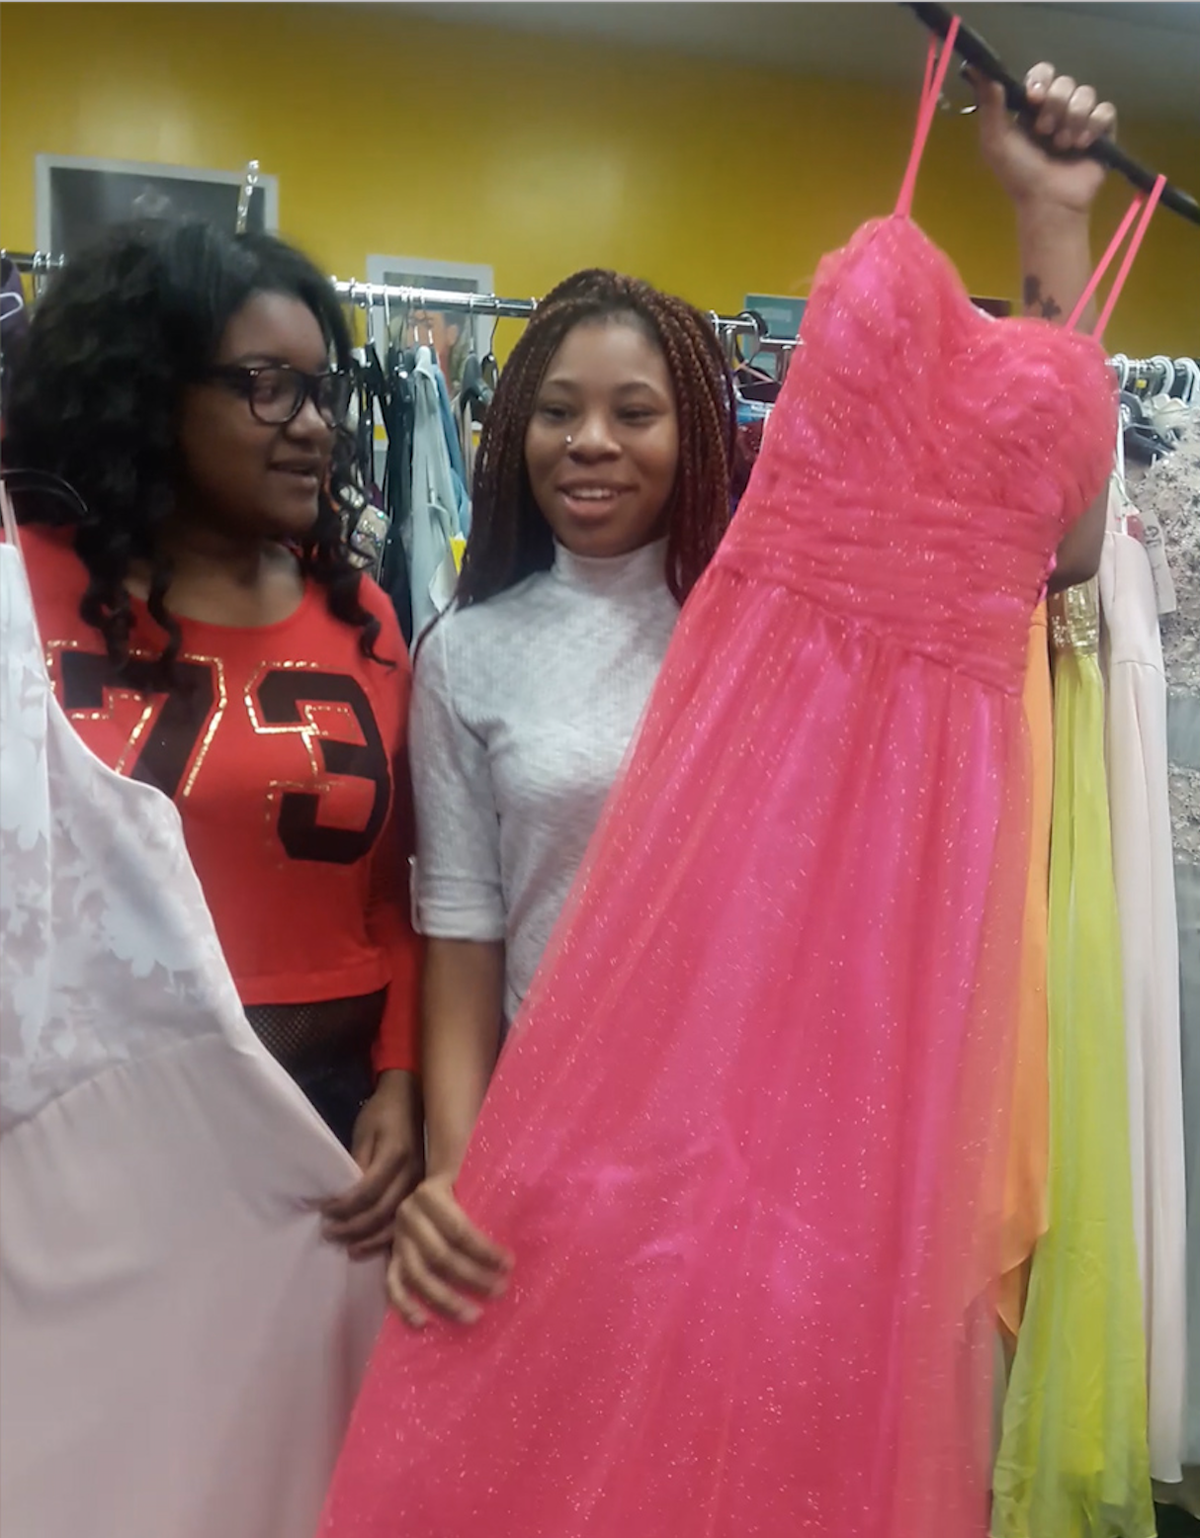 The Empowerment Zone offers affordable prom dresses to local teens ...